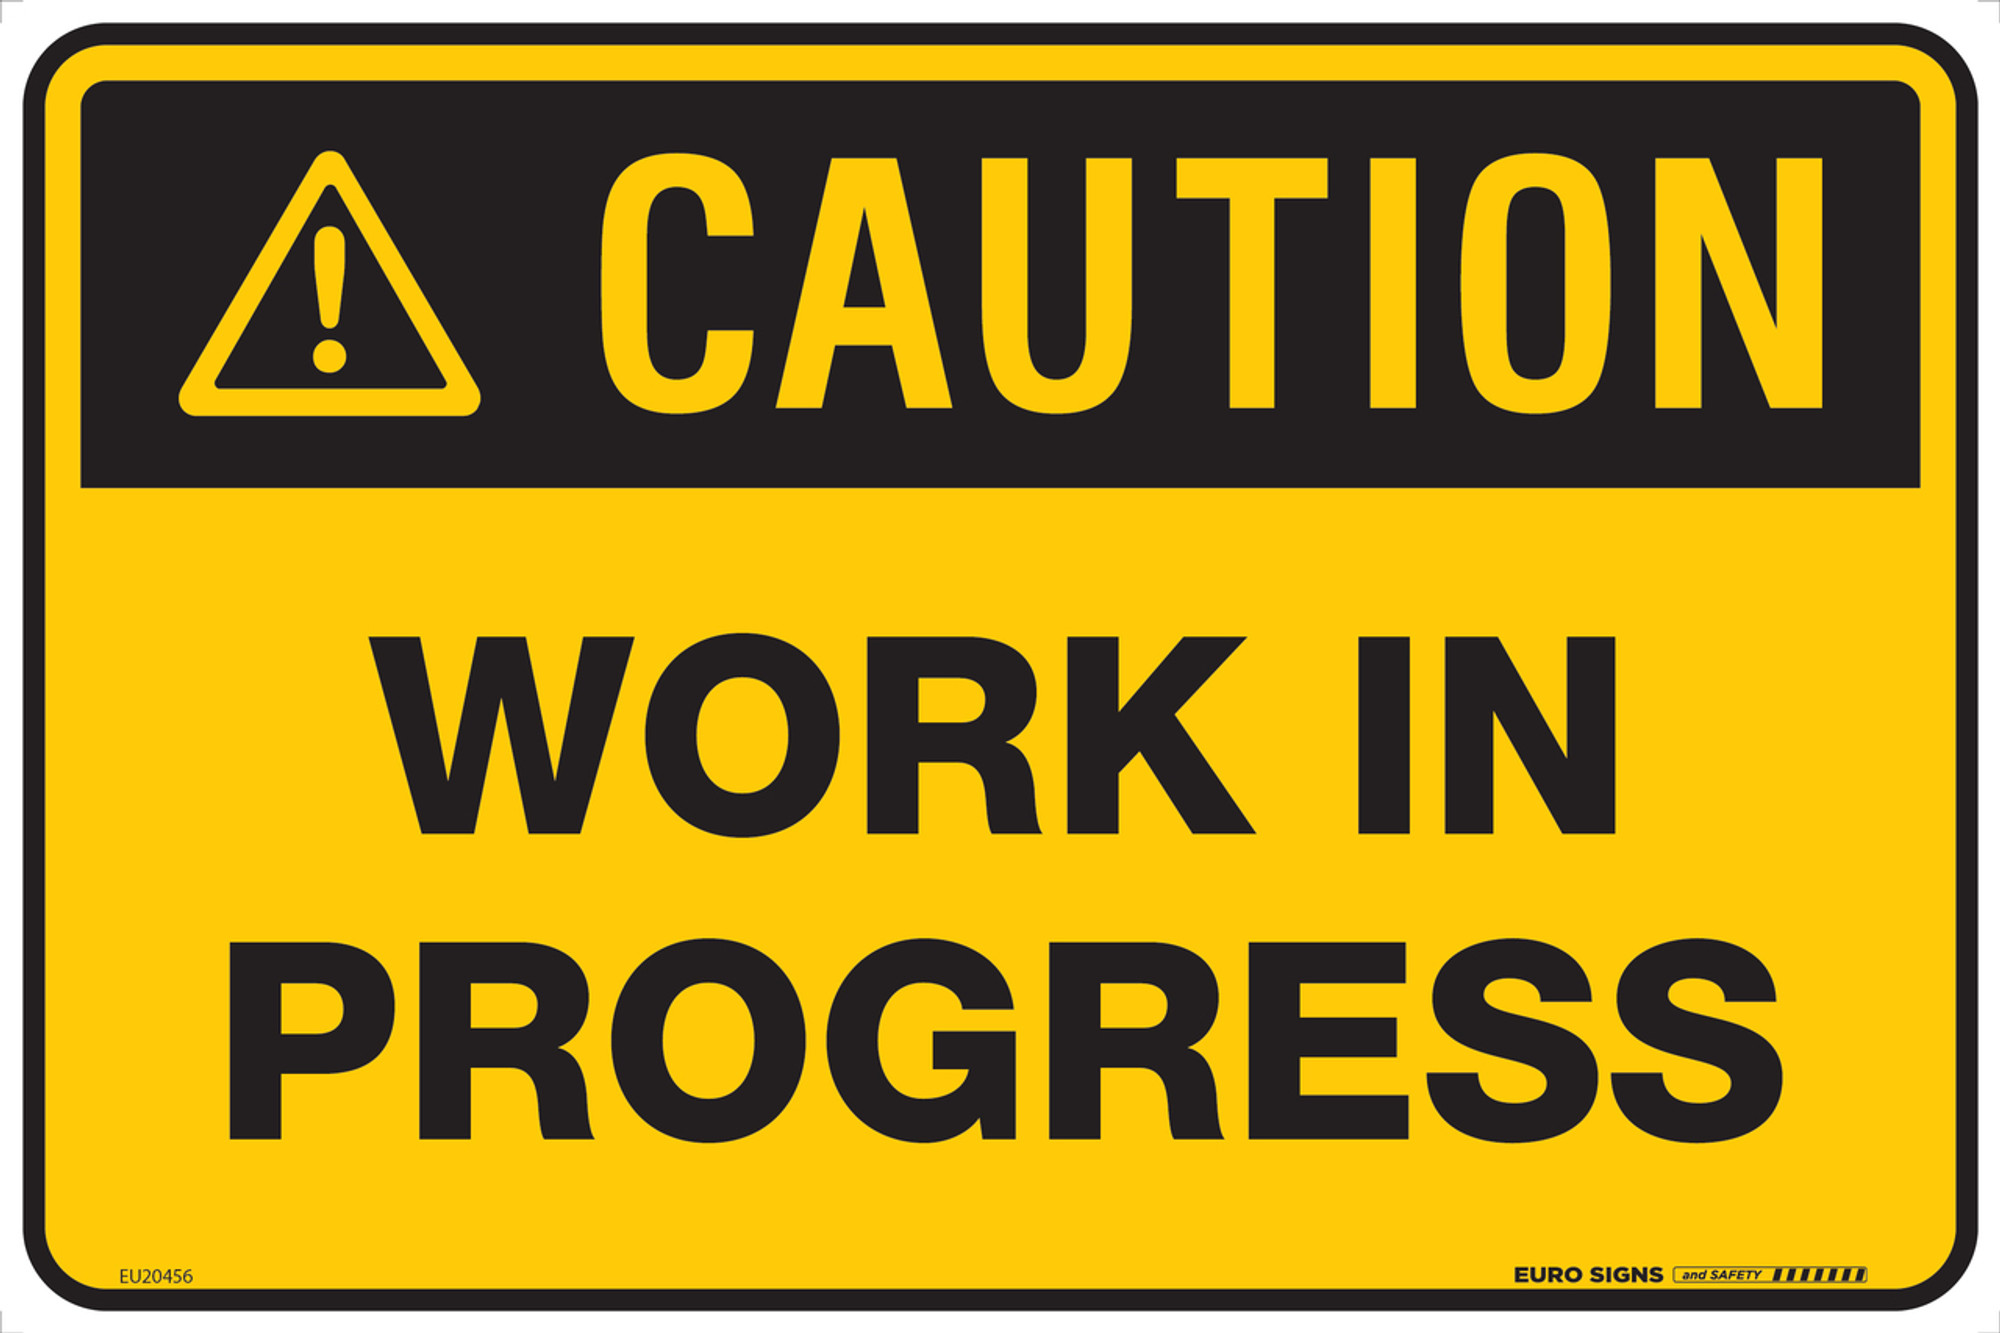 CAUTION WORK IN PROGRESS 450x300 POLY - Euro Signs and Safety